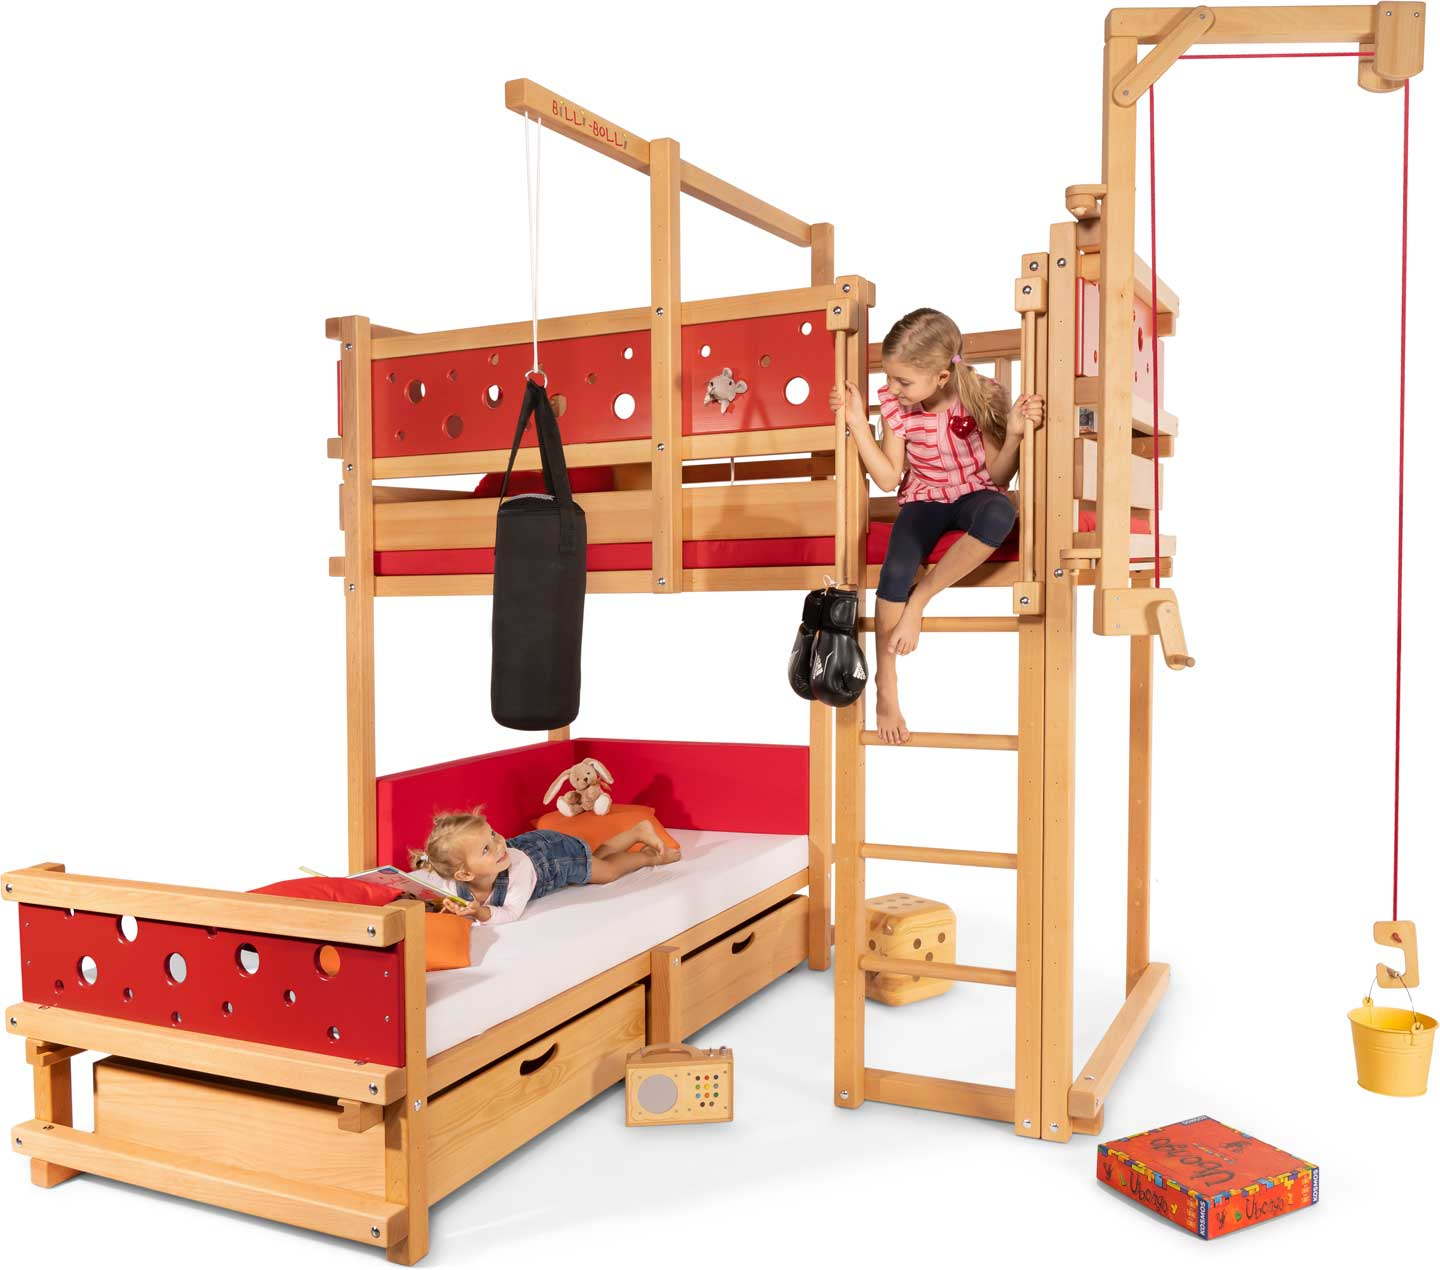 Image of: Corner Bunk Bed Buy Online Billi Bolli